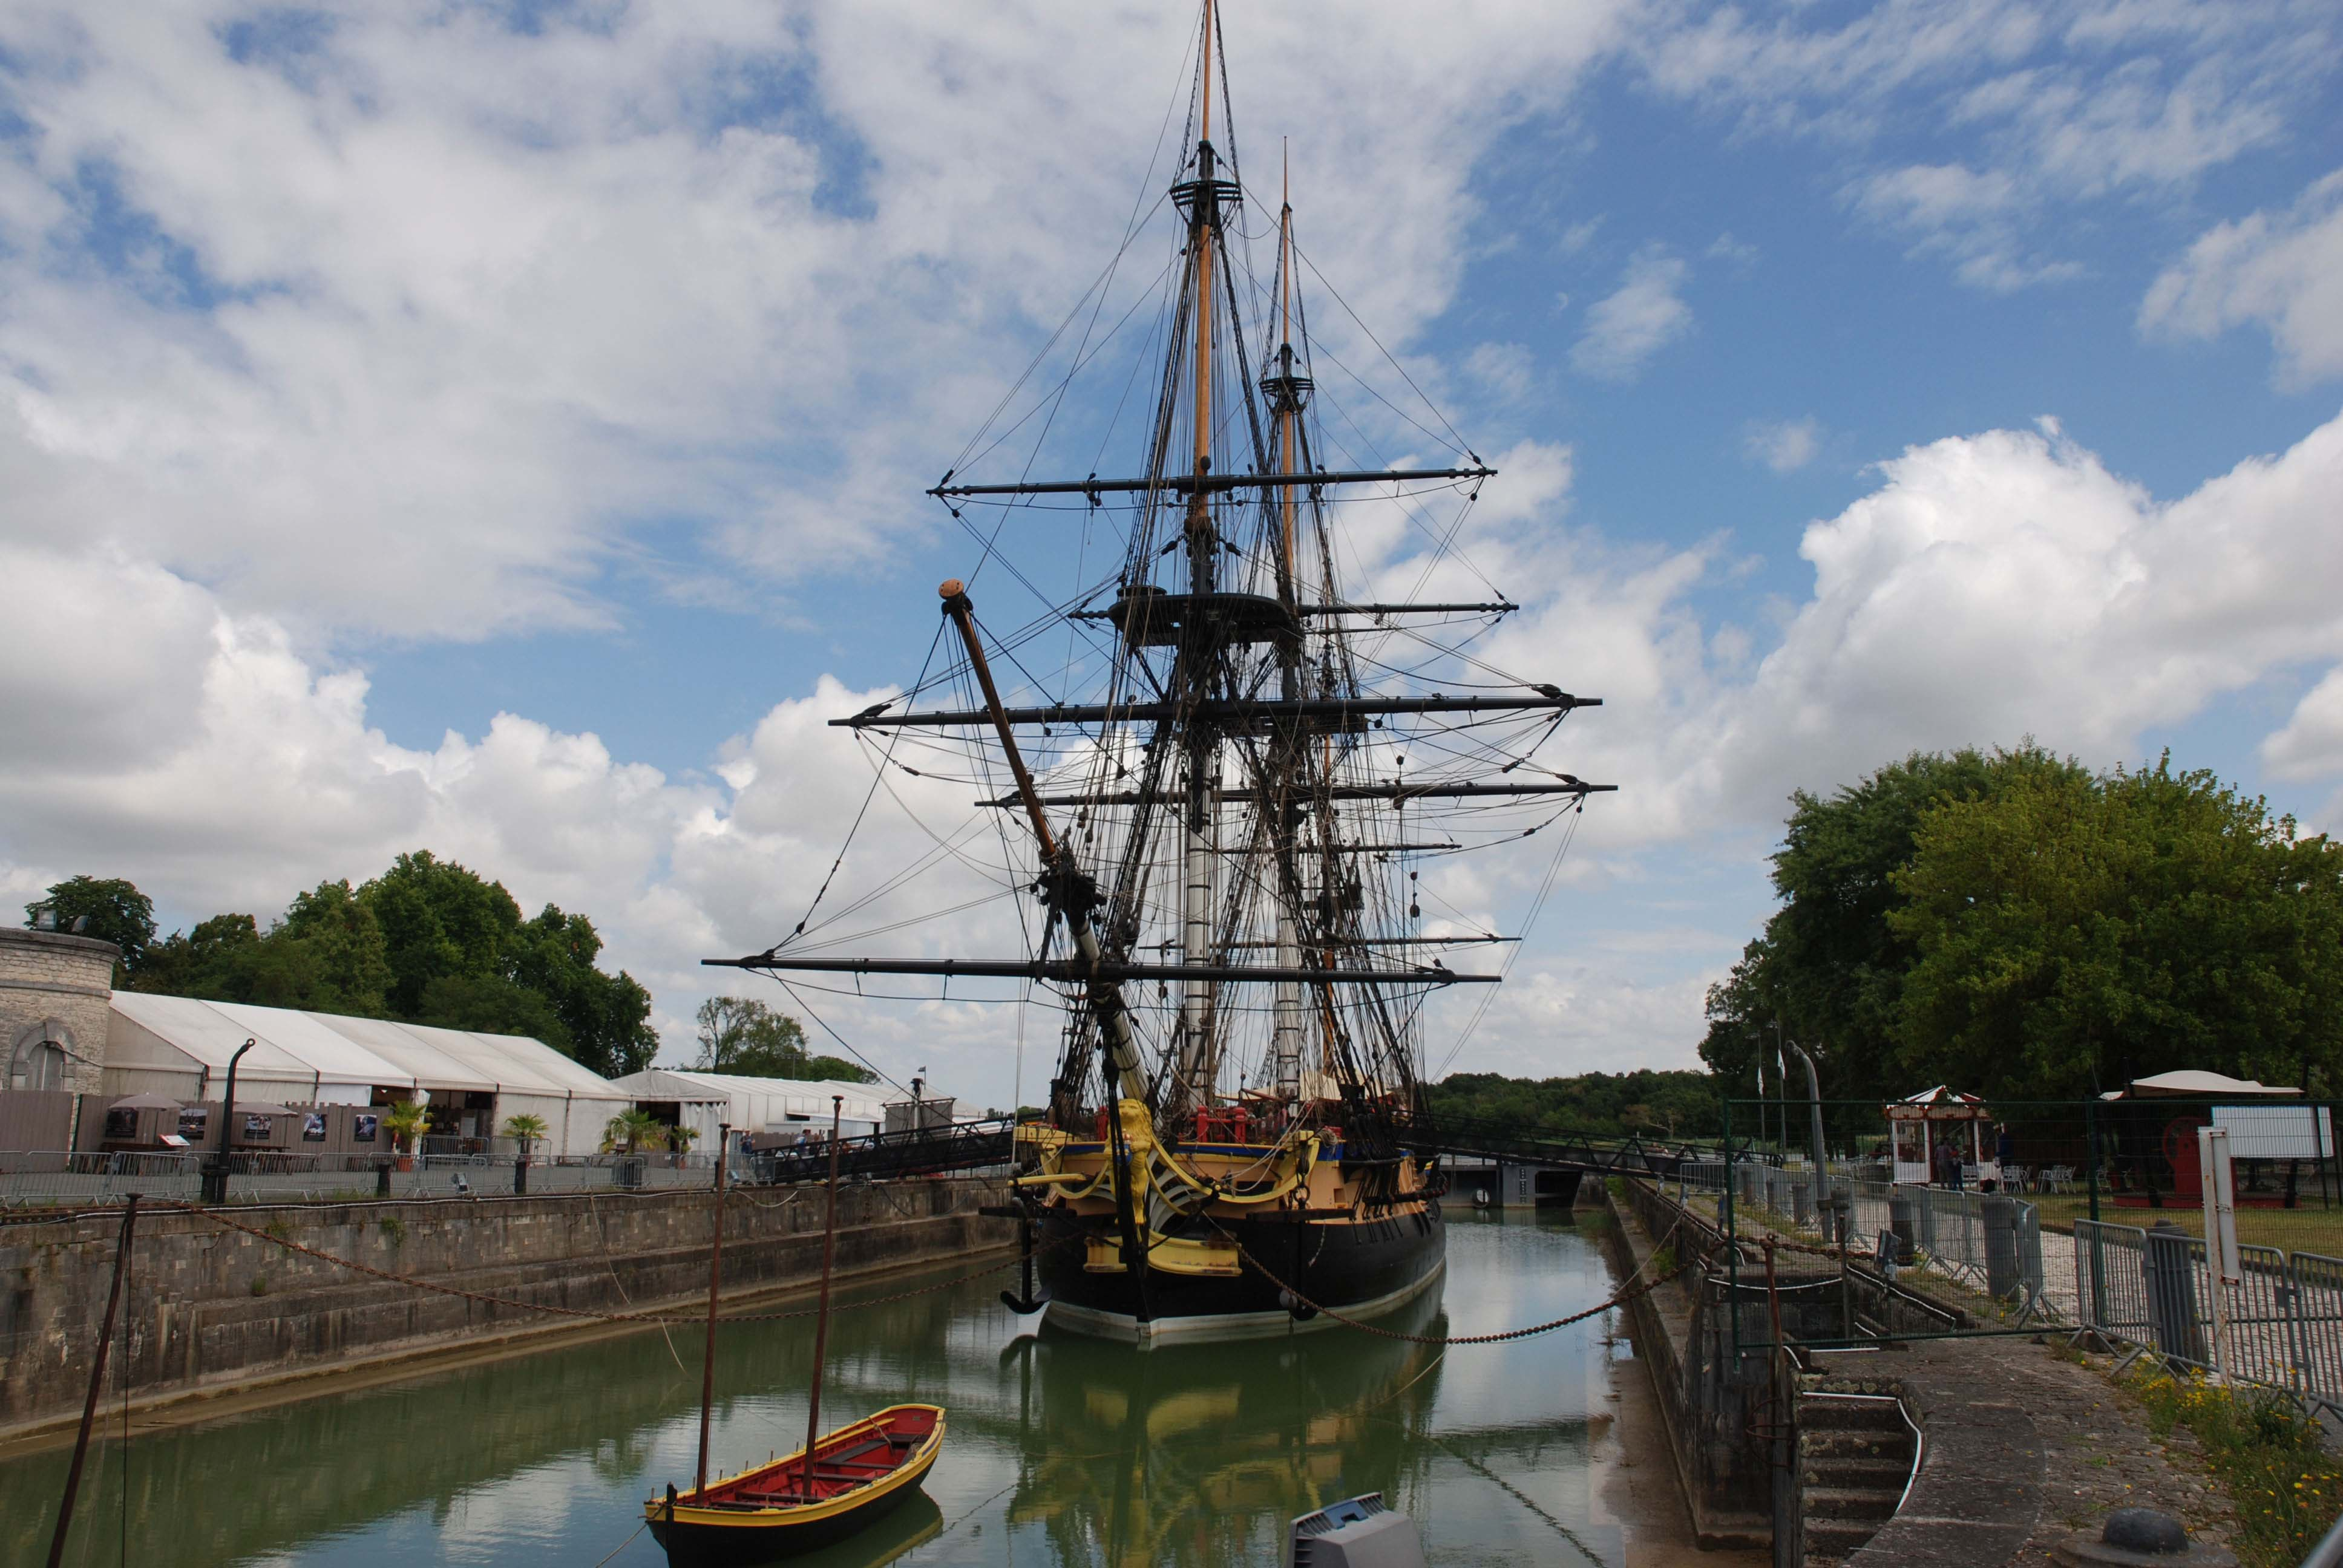 Maritime history at Rochefort